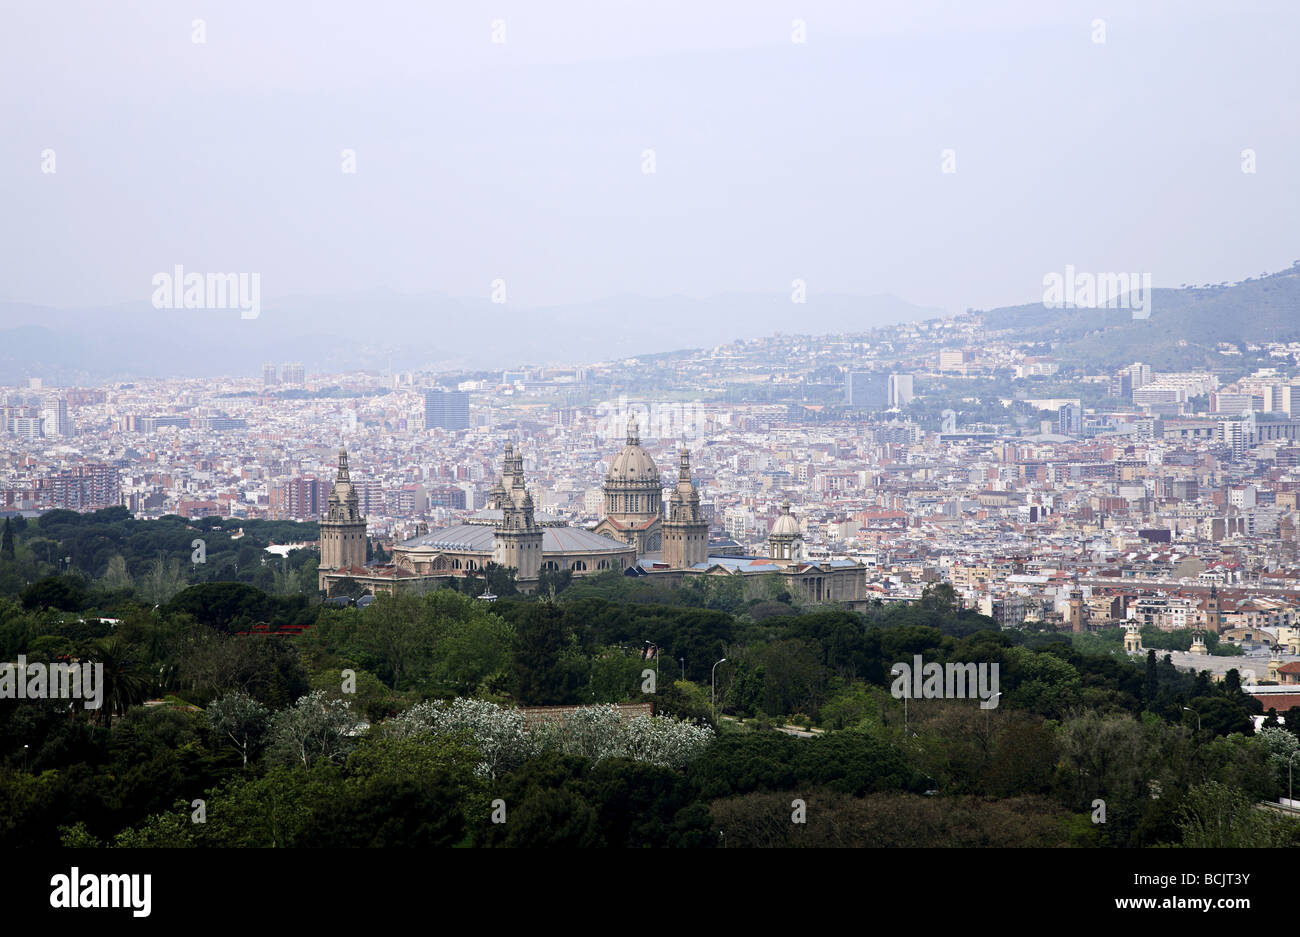 National art museum of catalonia and barcelona - Stock Image